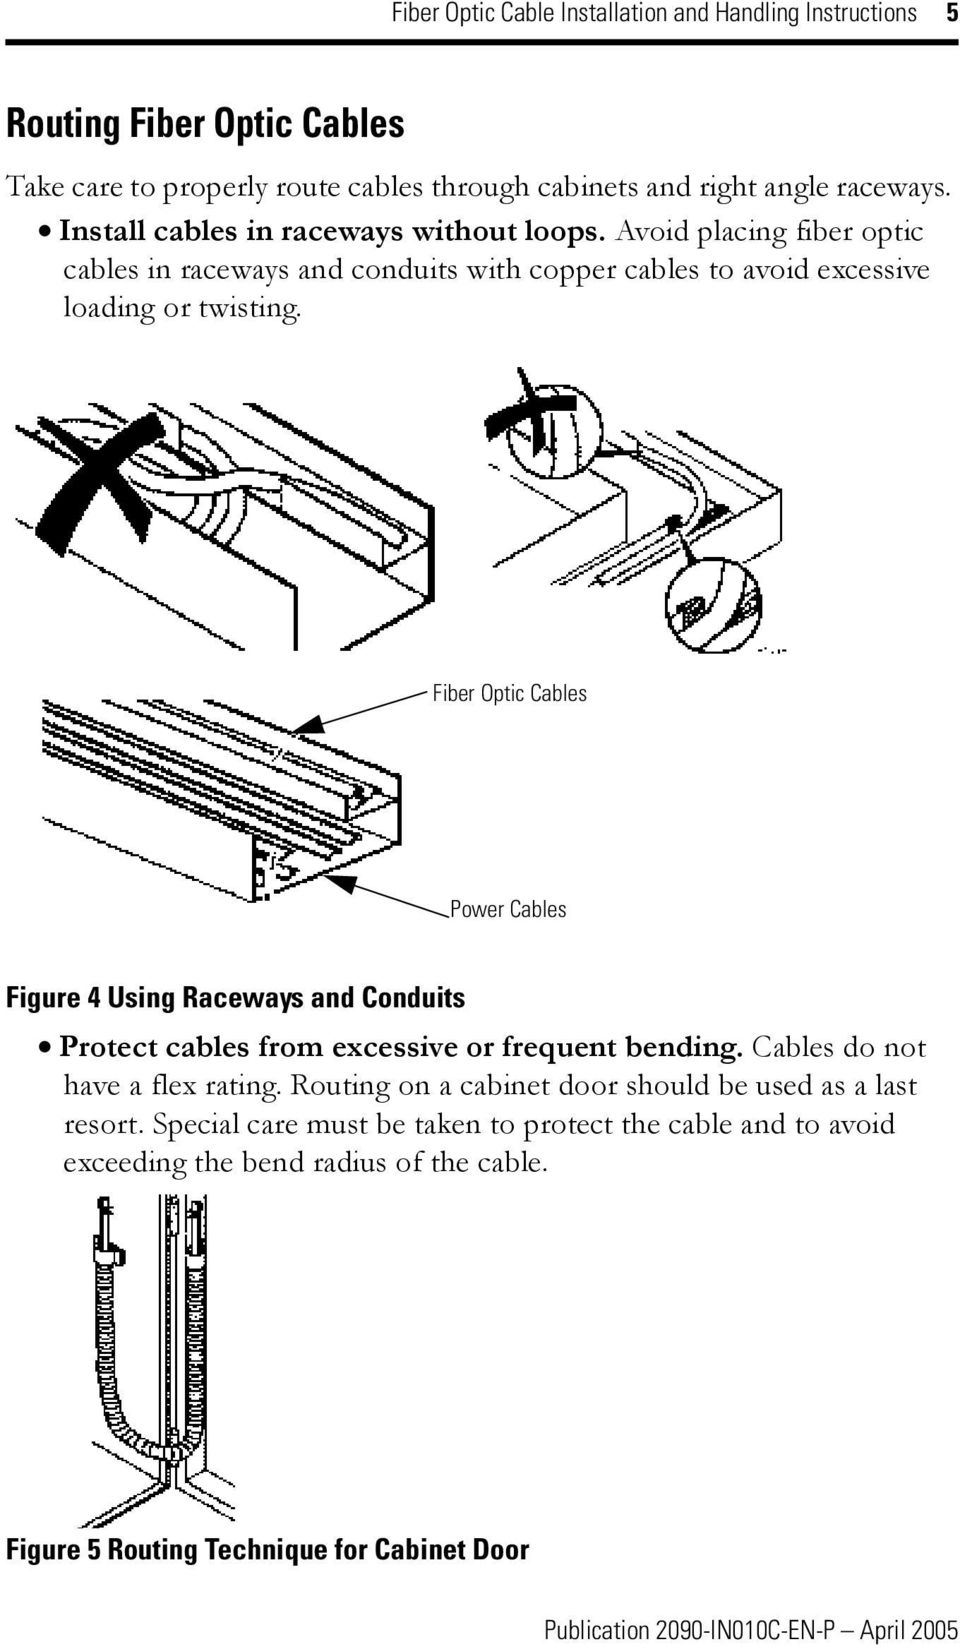 Fiber Optic Cable Installation And Handling Instructions Pdf Wire Diagram Cables Power Figure 4 Using Raceways Conduits Protect From Excessive Or